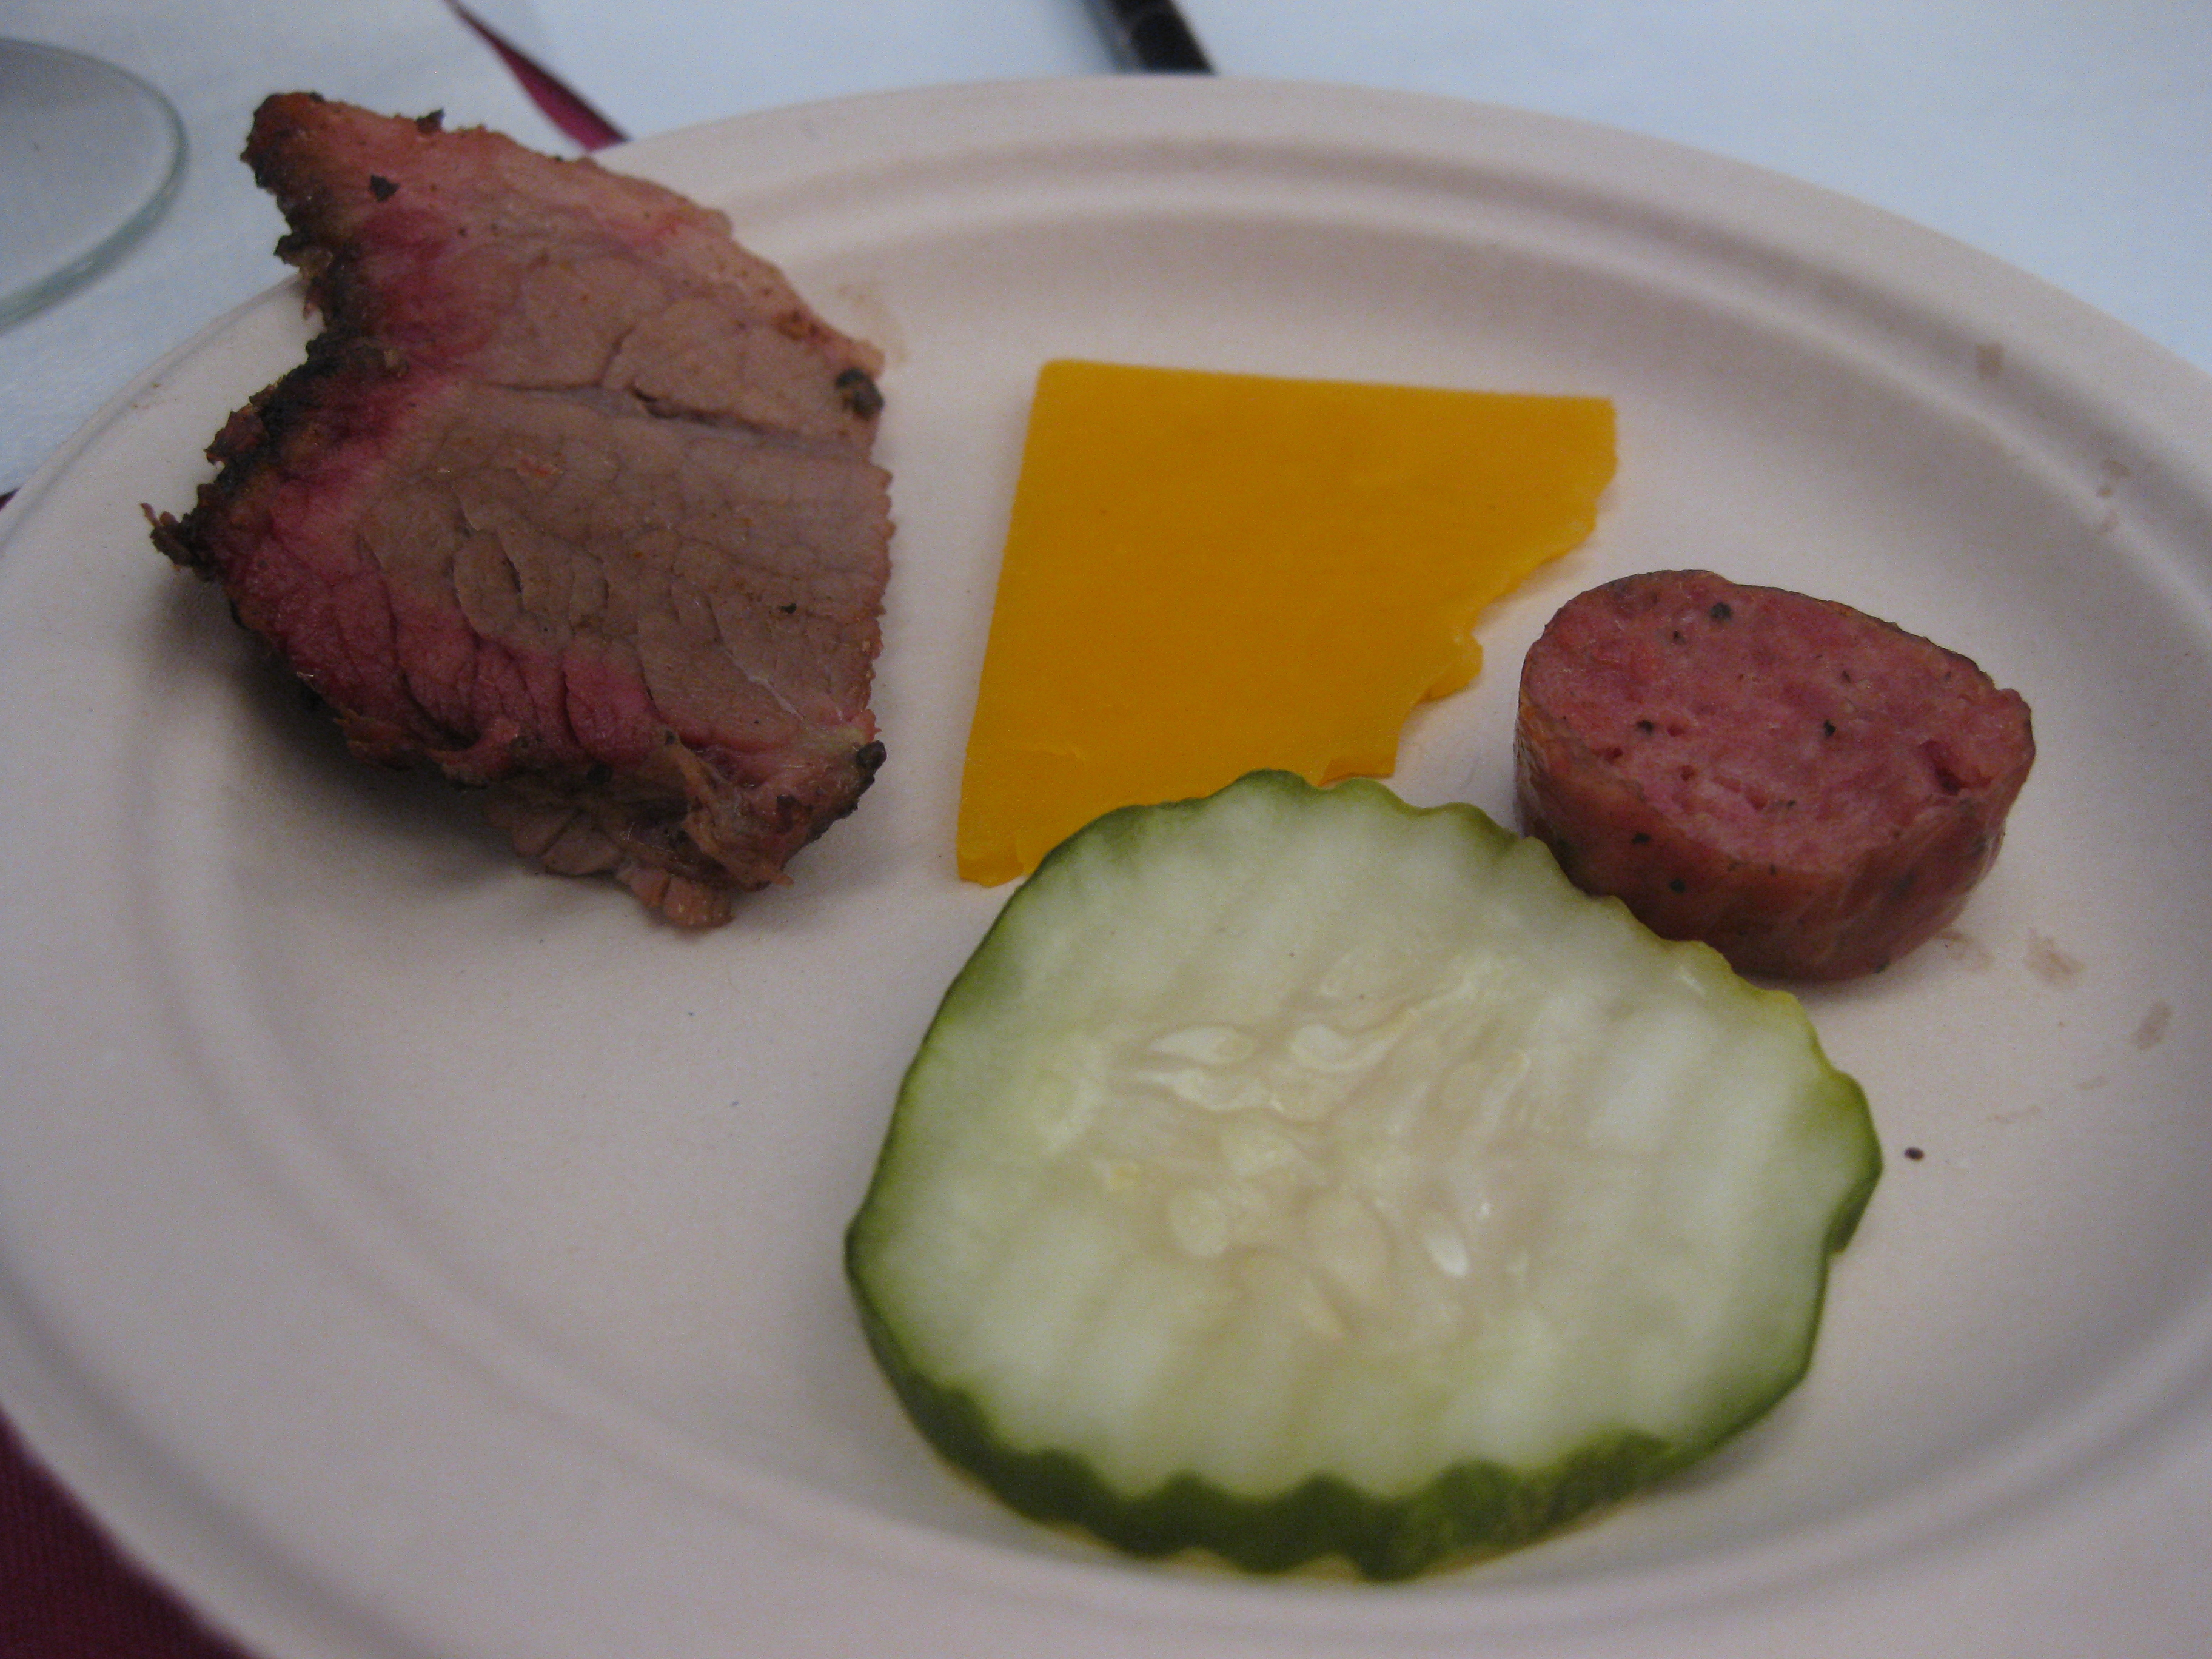 A sample plate of food.